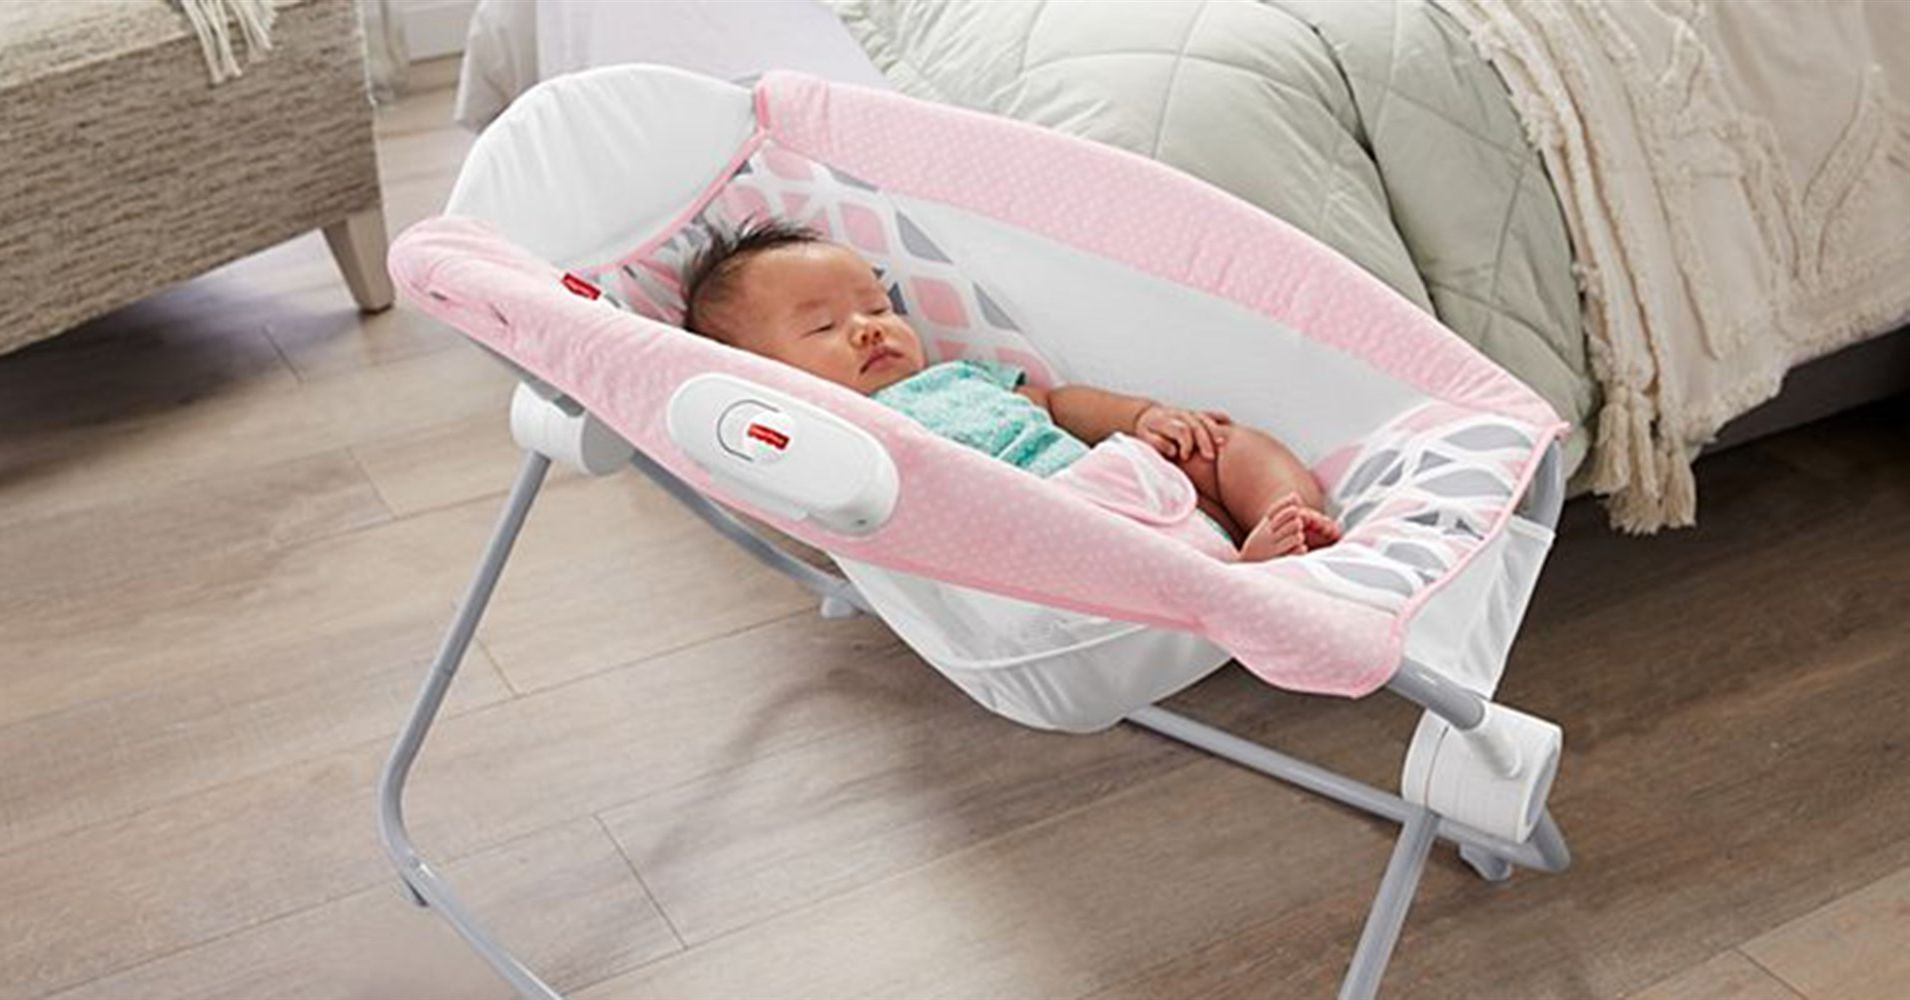 Fisher Price recalls models of its Rock 'n Play Sleeper.